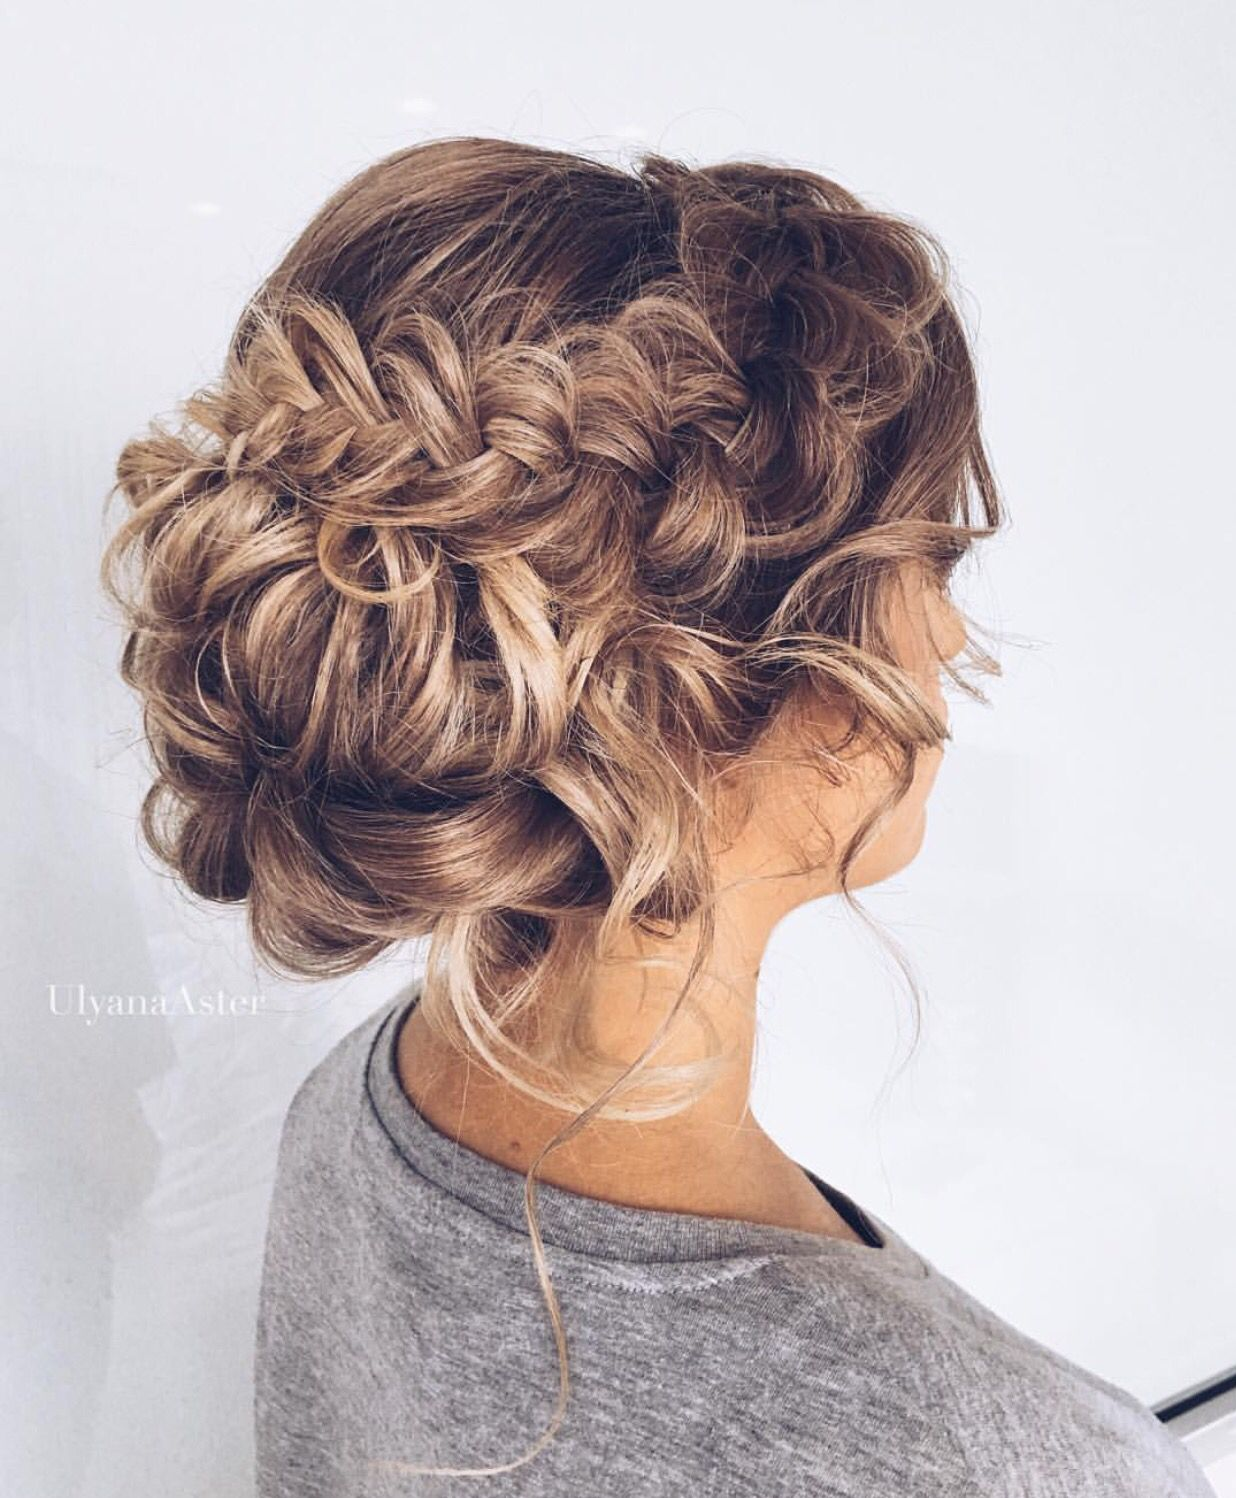 Gorgeous braided updo with curls this is perfect for a wedding